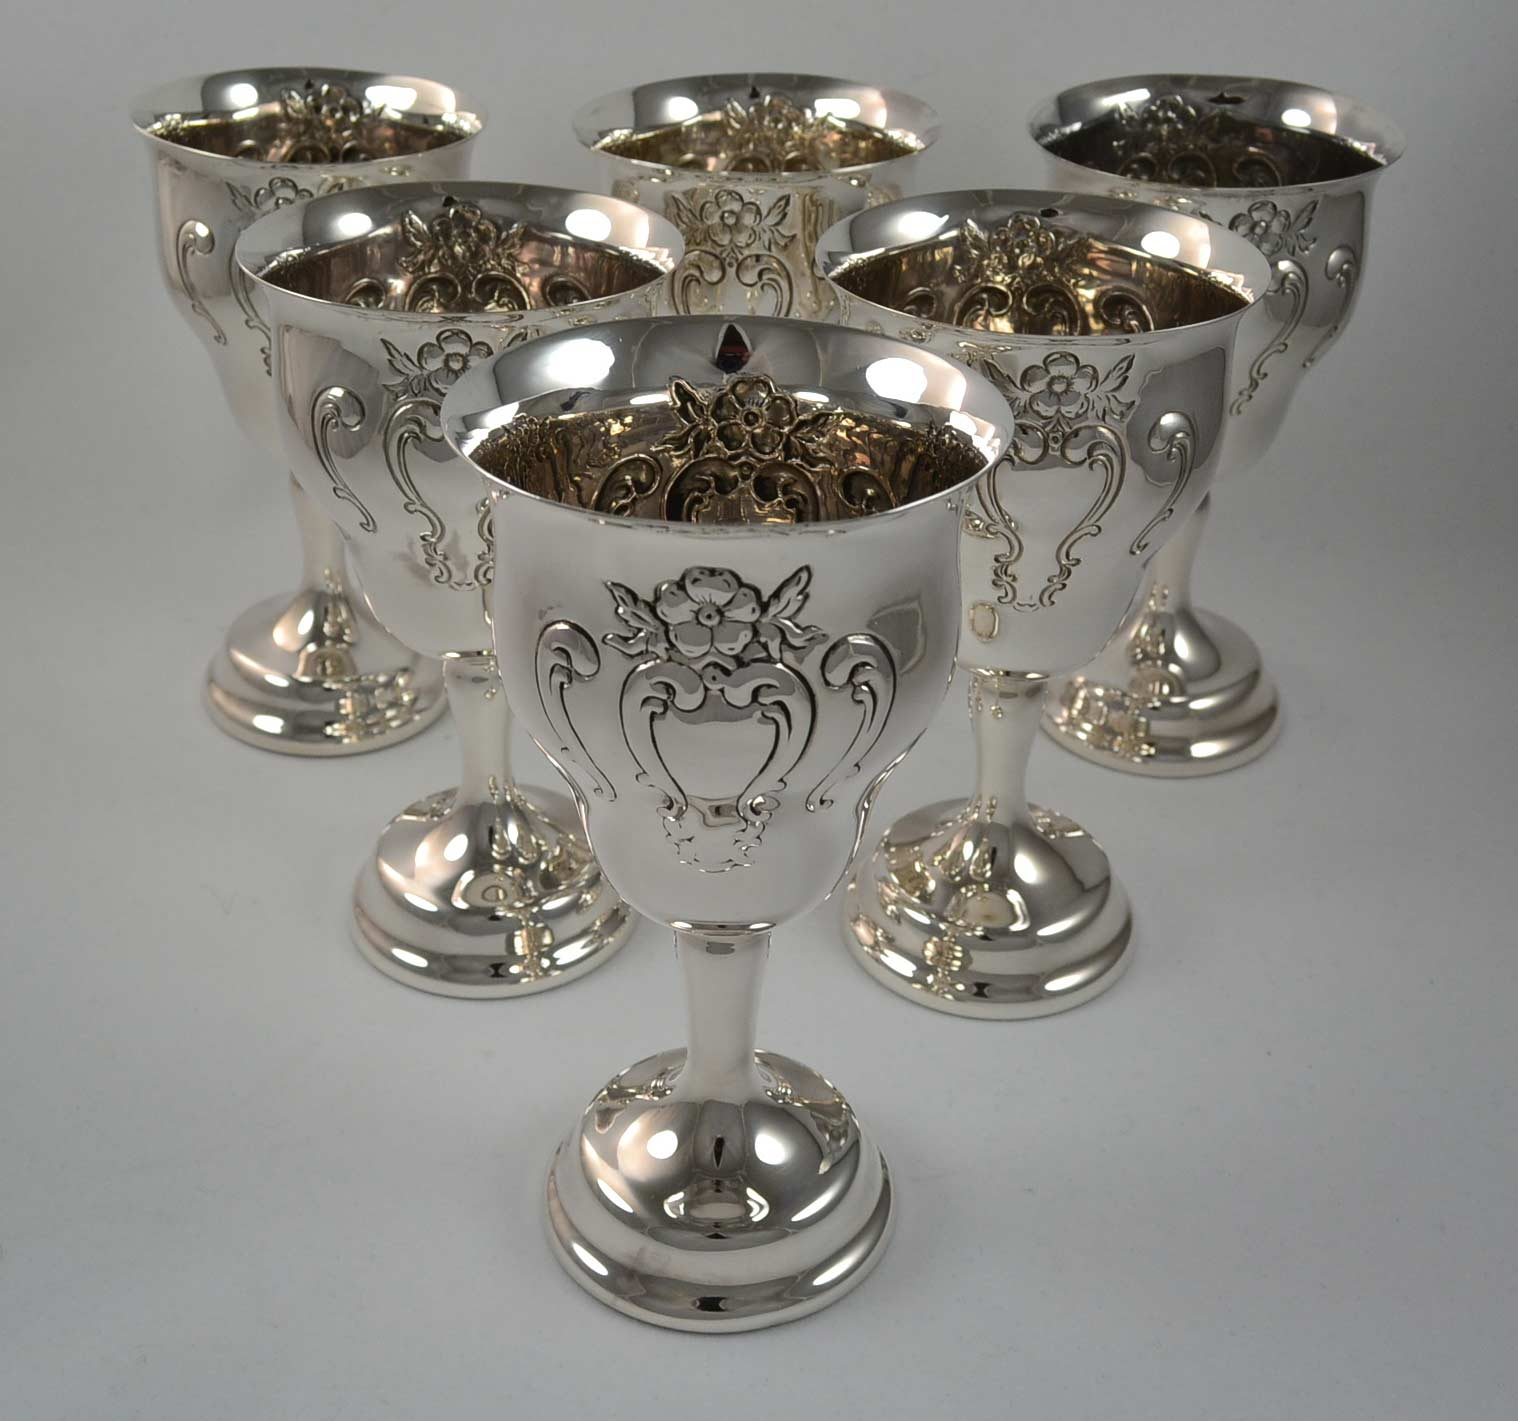 Captivating gorham silver for kitchen and dining sets with gorham silver patterns